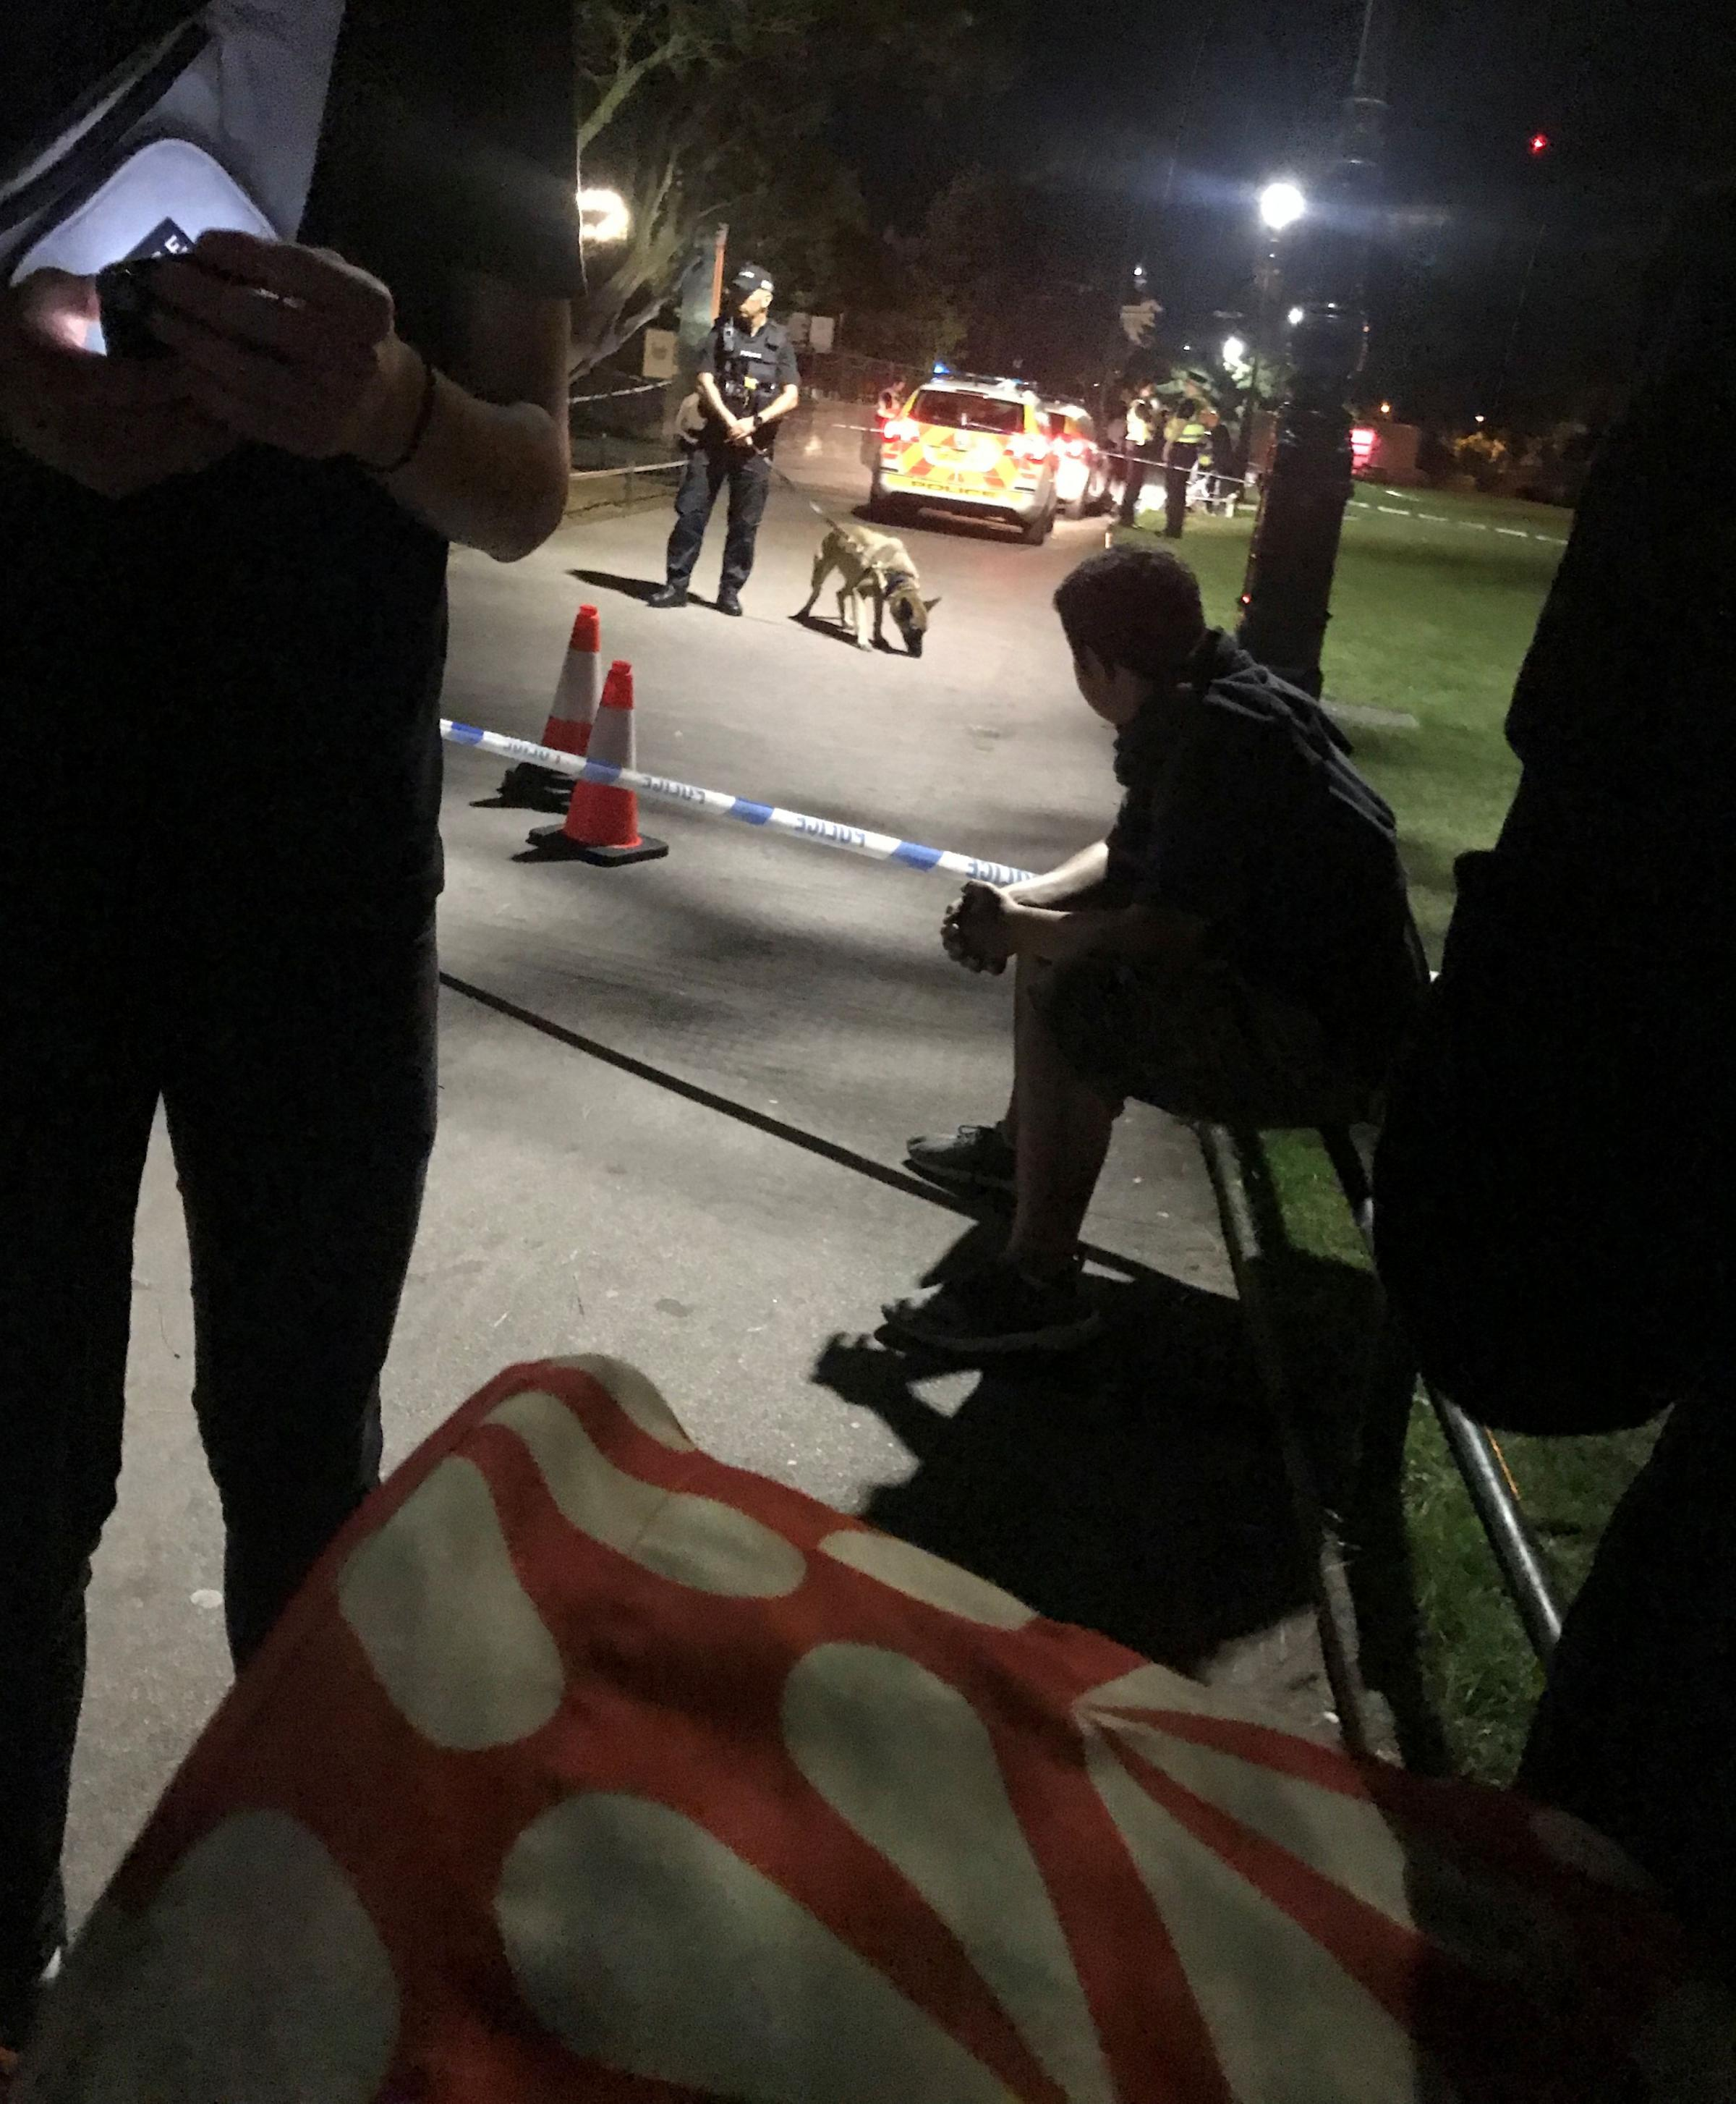 Police called to 'stabbing' in Lower Gardens after fireworks